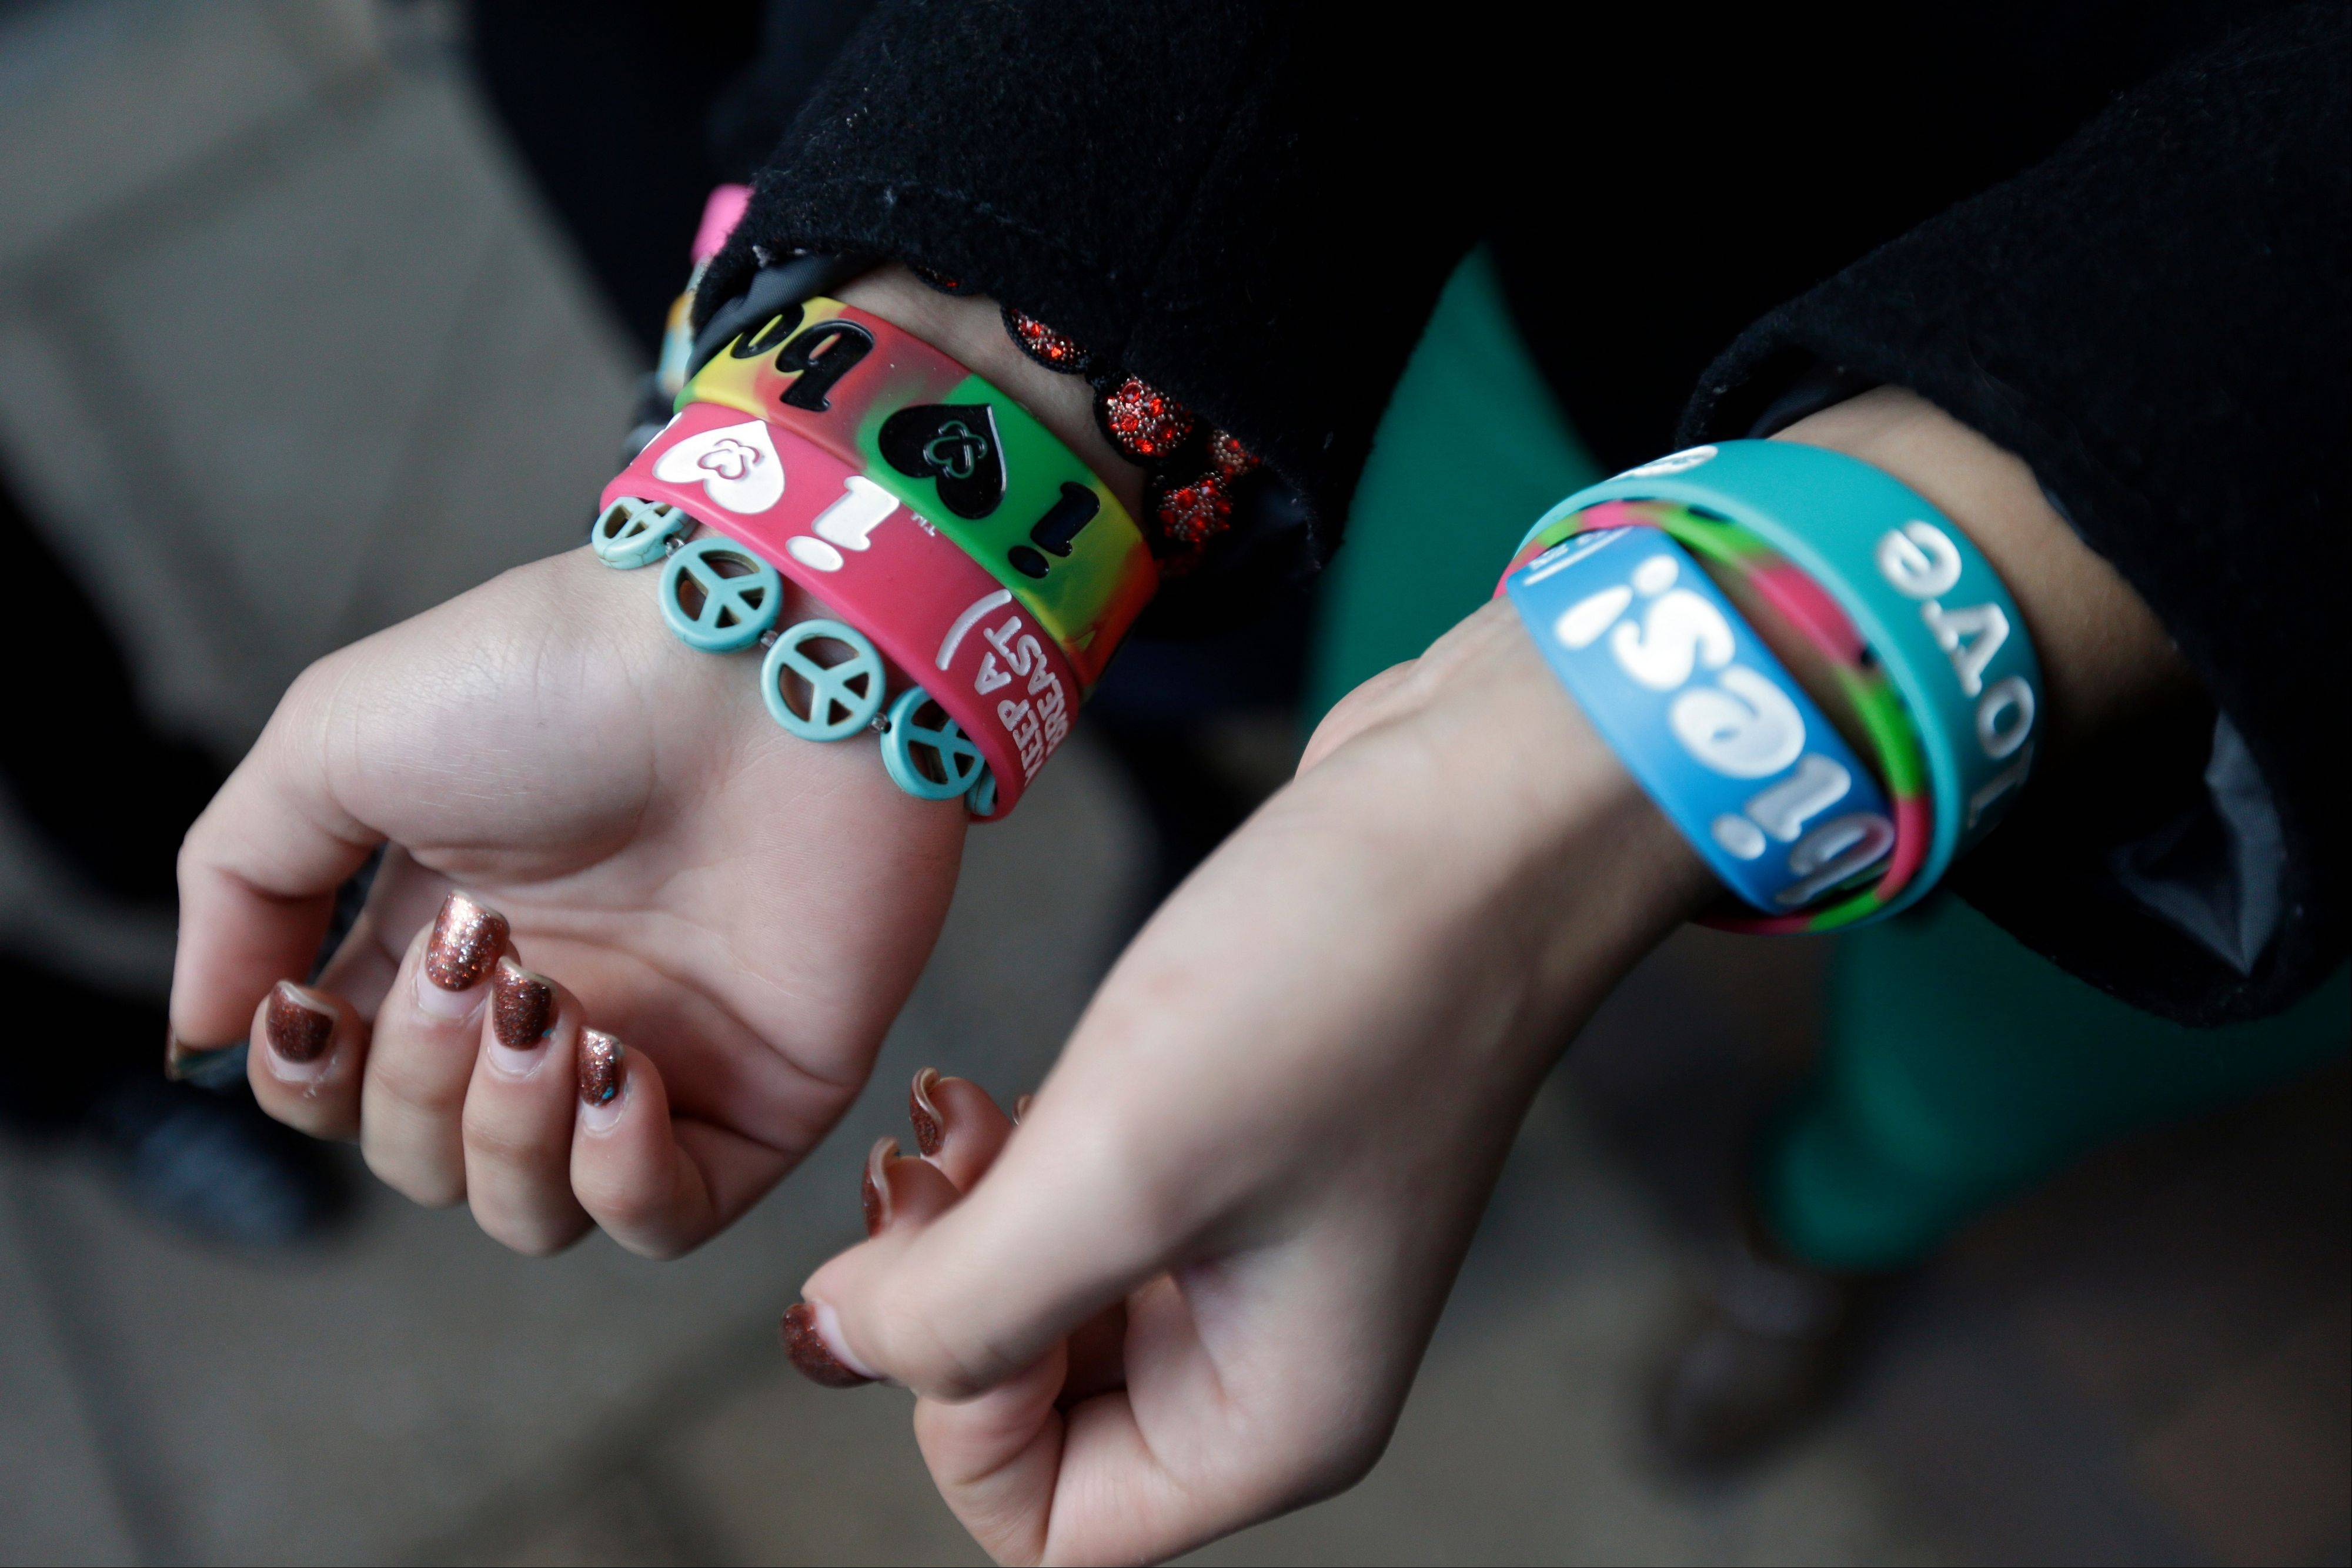 Easton Area School District students Brianna Hawk, left, and Kayla Martinez, display their �I (heart) Boobies!� bracelets for photographers outside the U.S. Courthouse in Philadelphia. The Easton Area School District says it will take its fight against �I (heart) Boobies!� bracelets to the U.S. Supreme Court. The board voted 7-1 Tuesday night, Oct. 29, 2013 to appeal a decision rejecting its claim the bracelets are lewd and should be banned from school. The bracelets are designed to promote breast cancer awareness among young people.